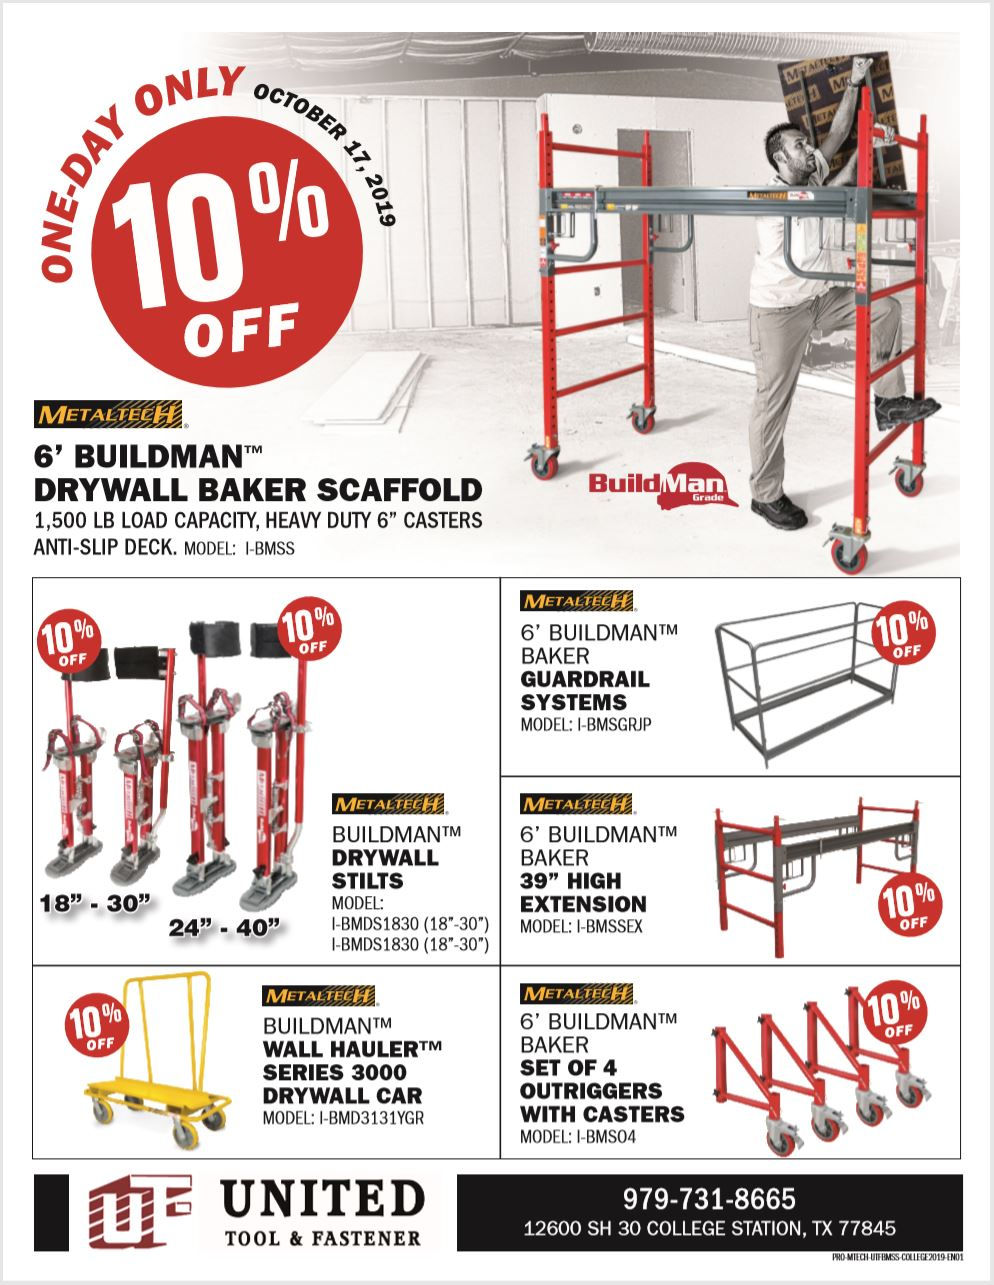 MetalTech College Station One-Day Sale